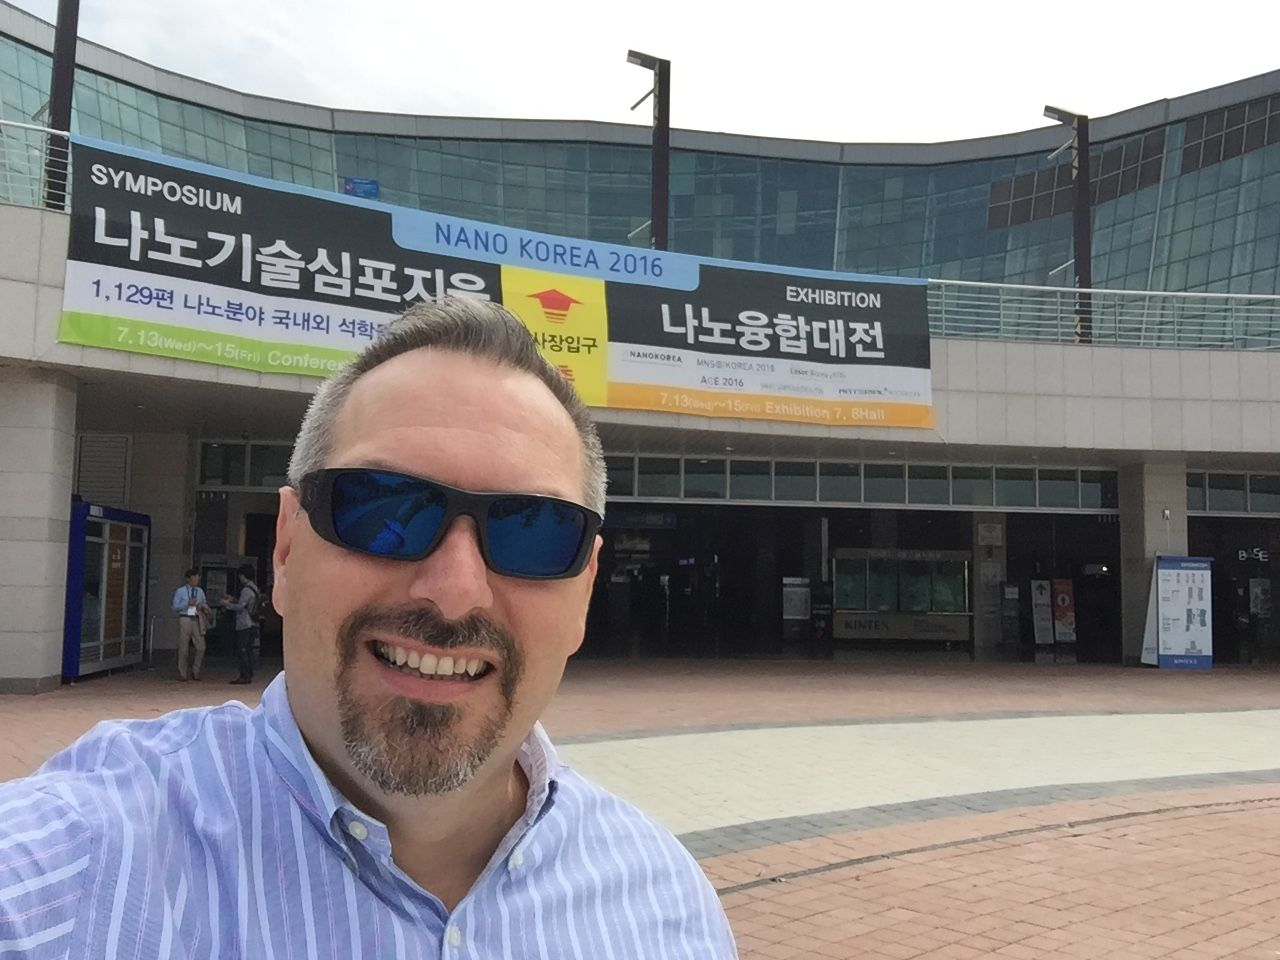 We are going to visit NanoKorea.